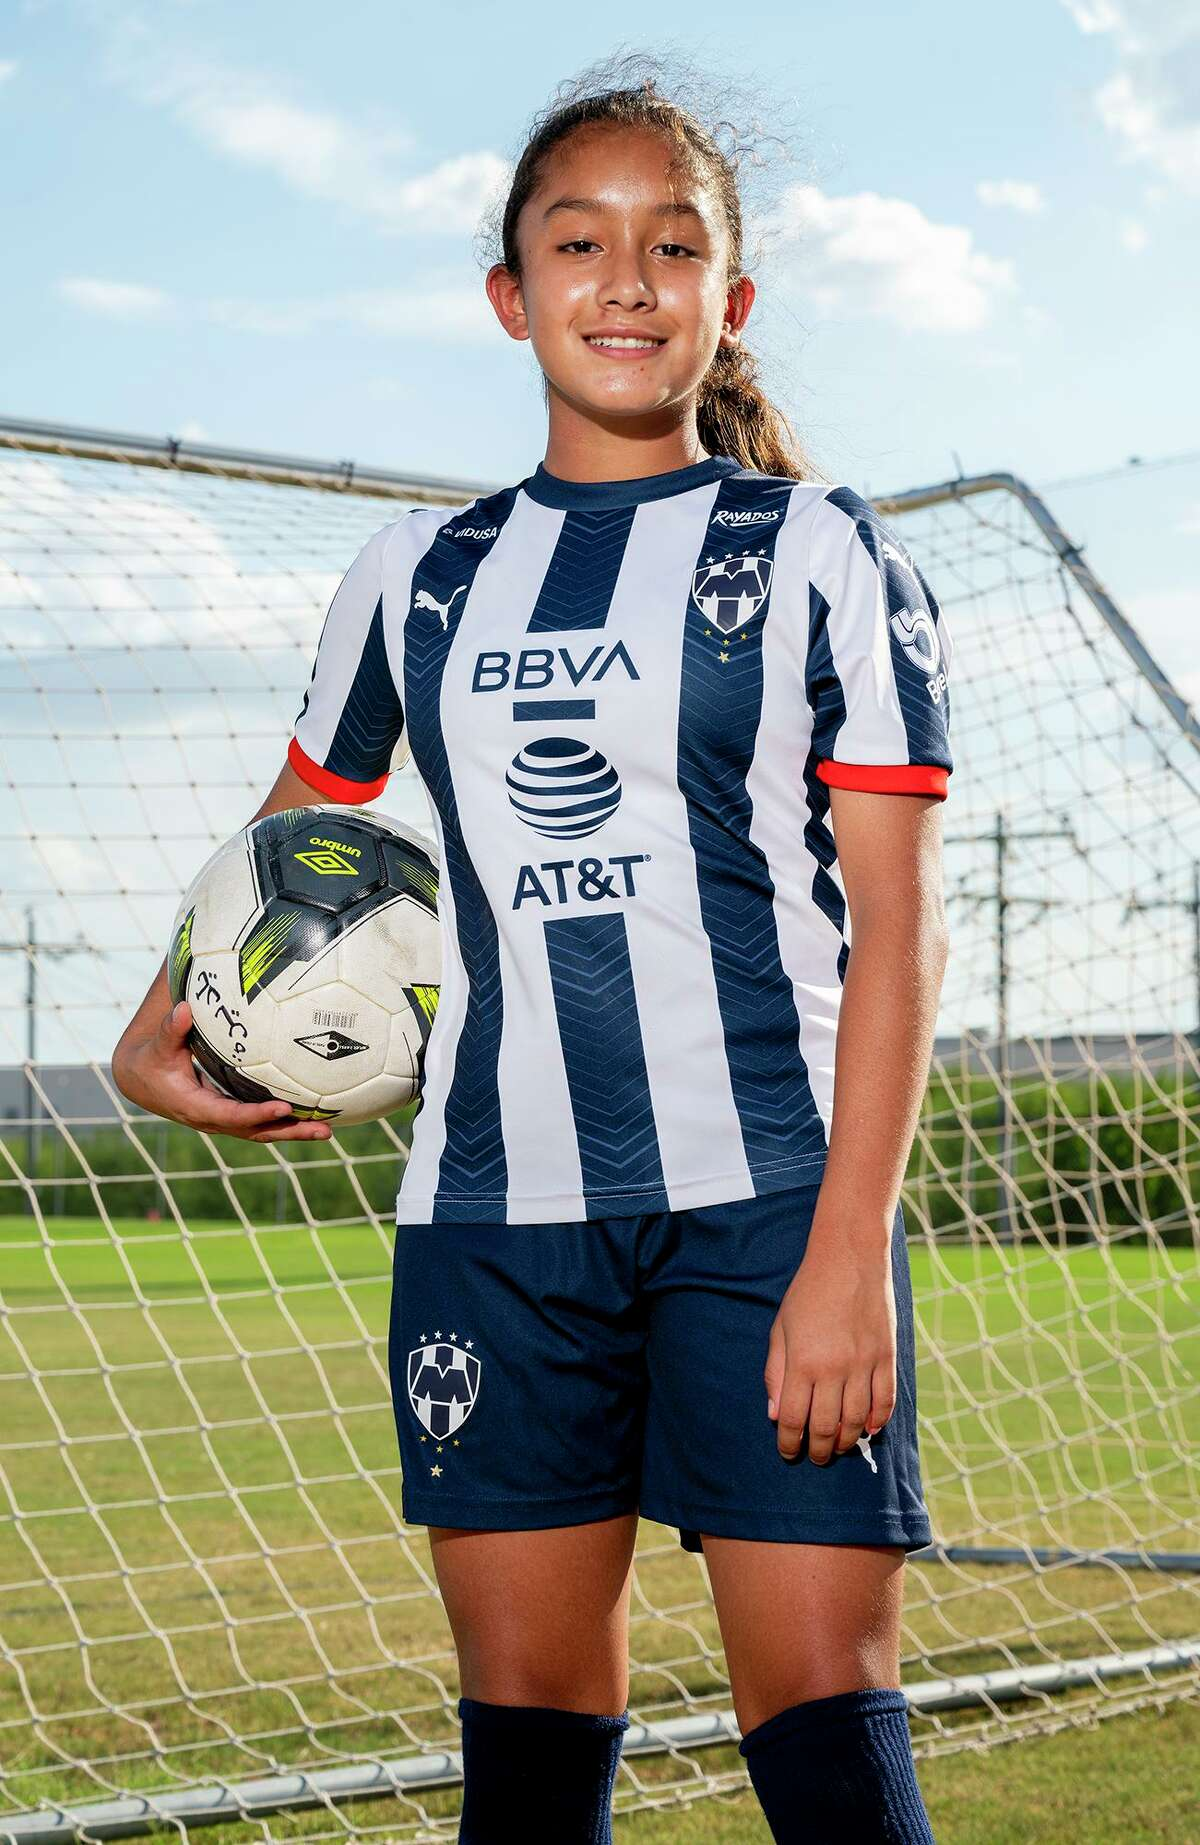 Rayados Soccer Academy's Yadhira Castillo was invited by the Mexican National Soccer Selection Committee to train in Mexico City this week.